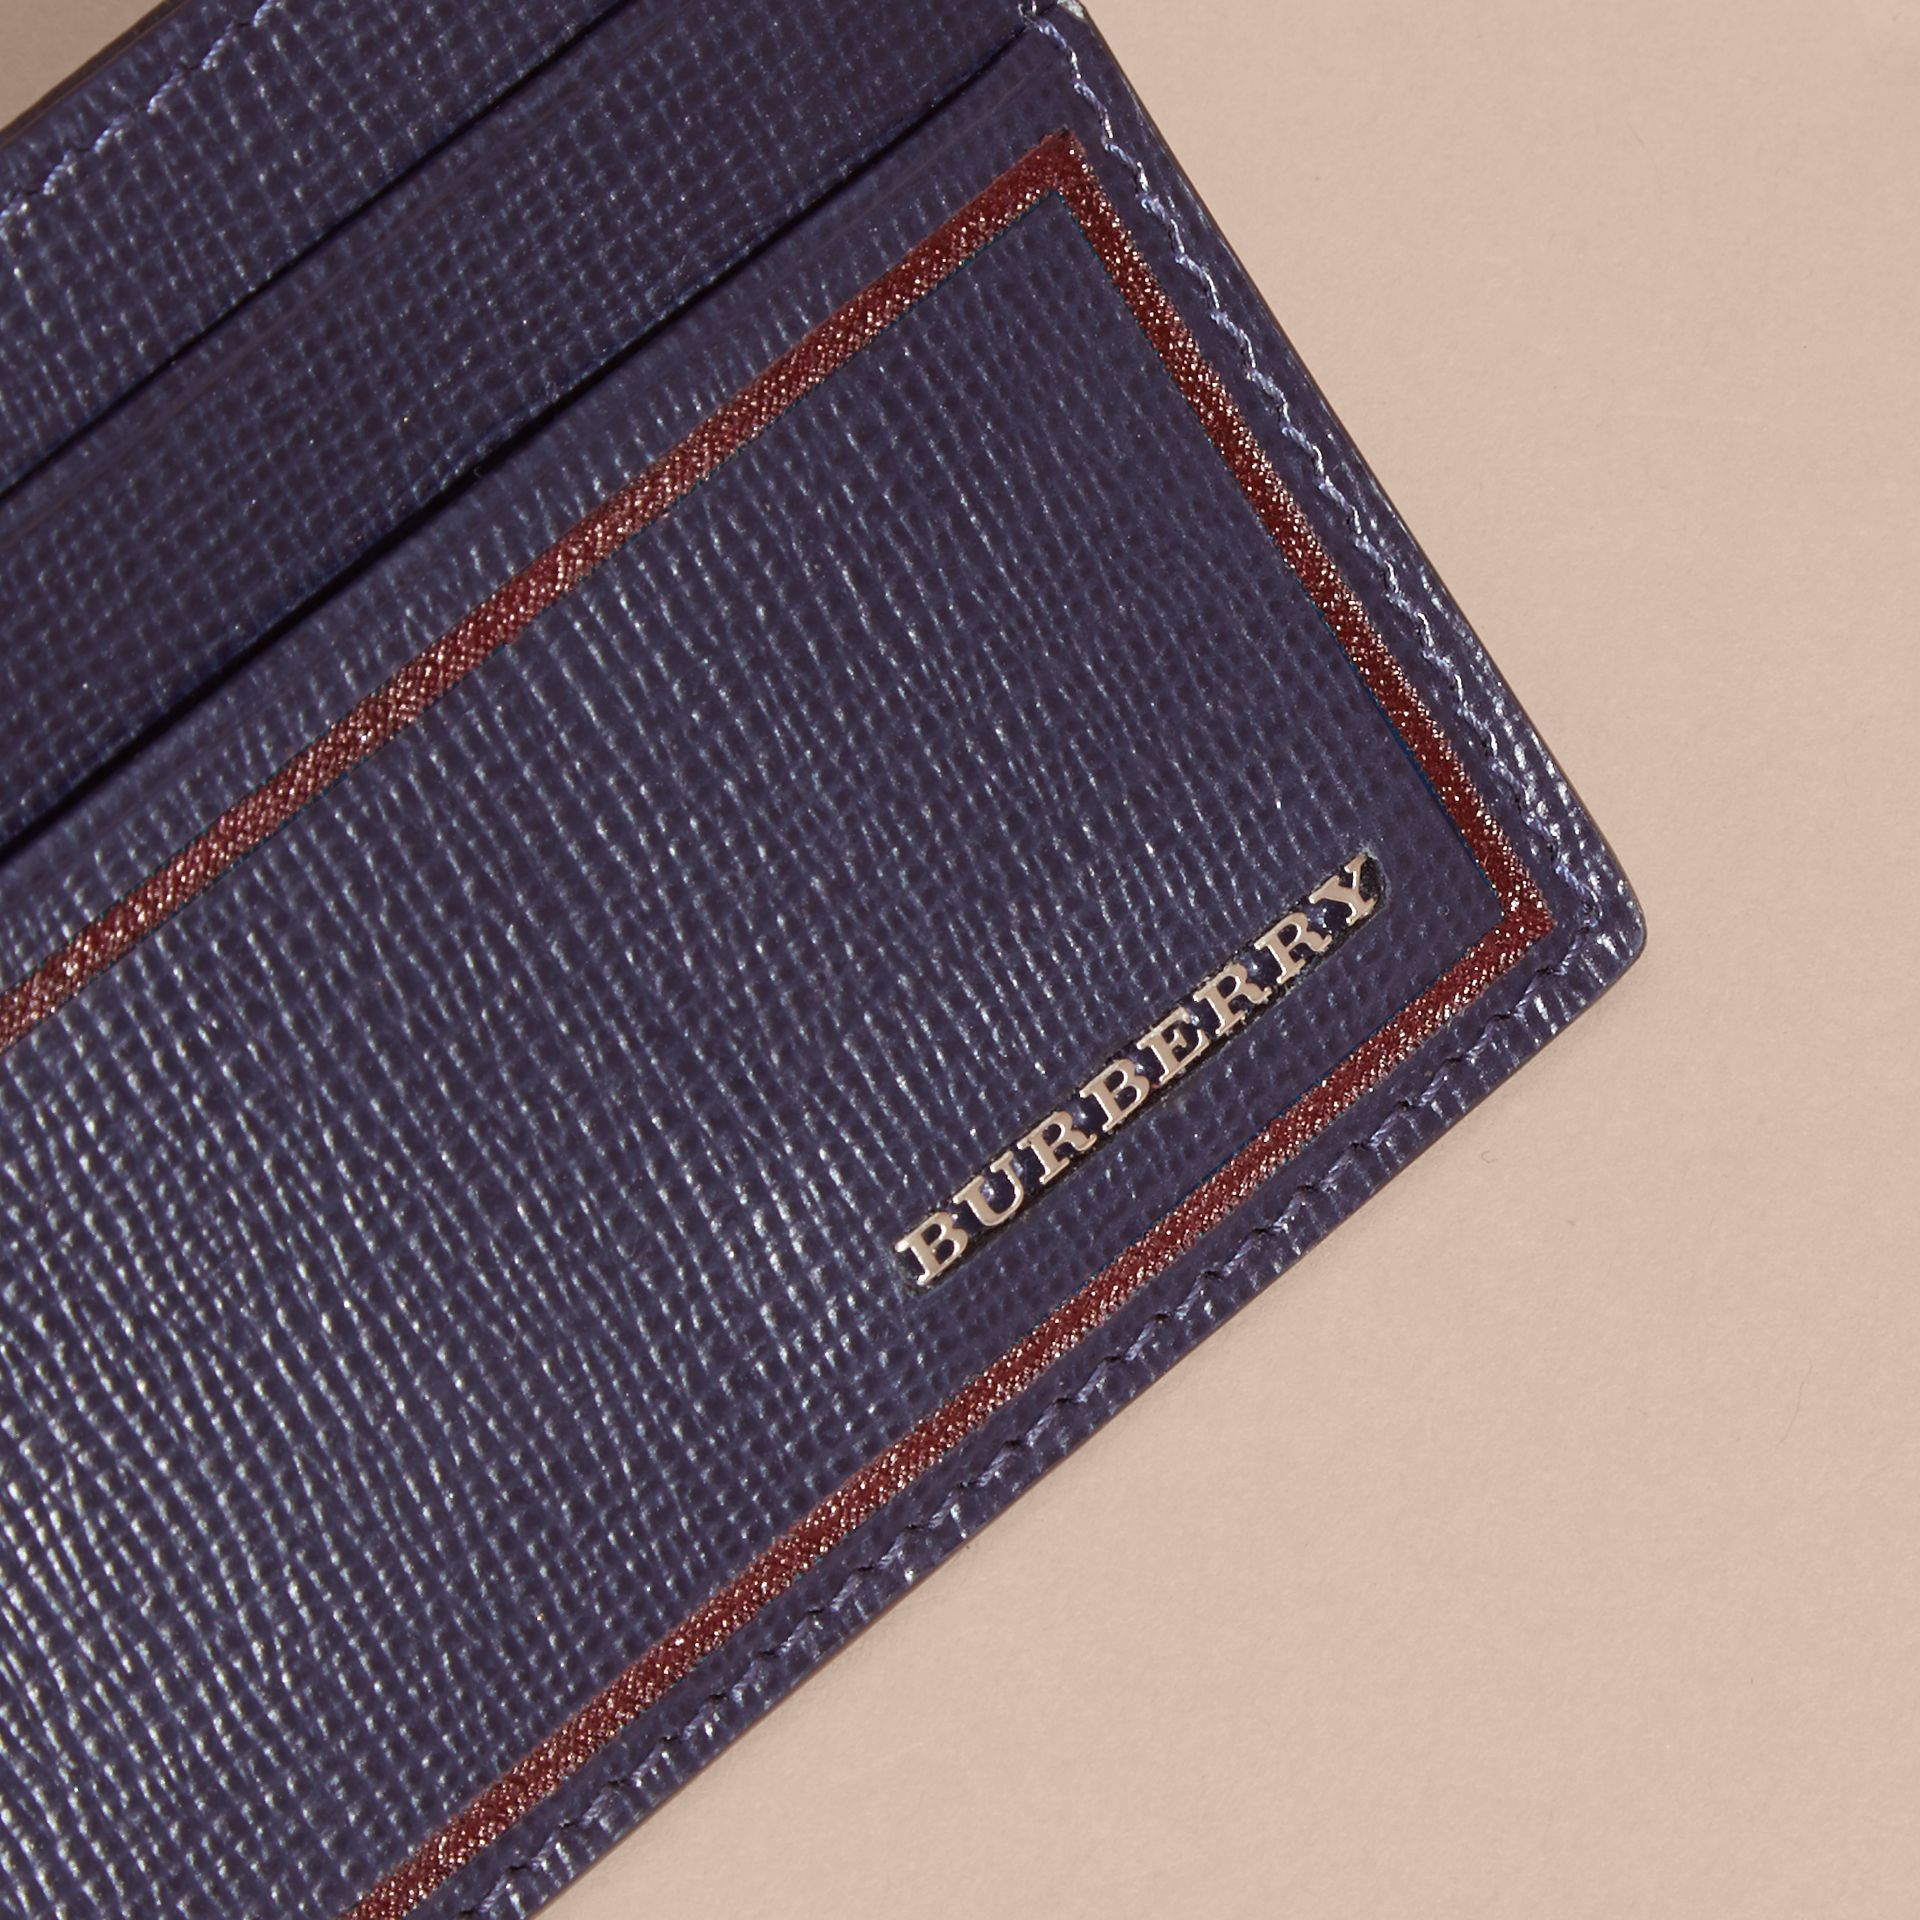 Border Detail London Leather Card Case in Dark Navy - gallery image 3